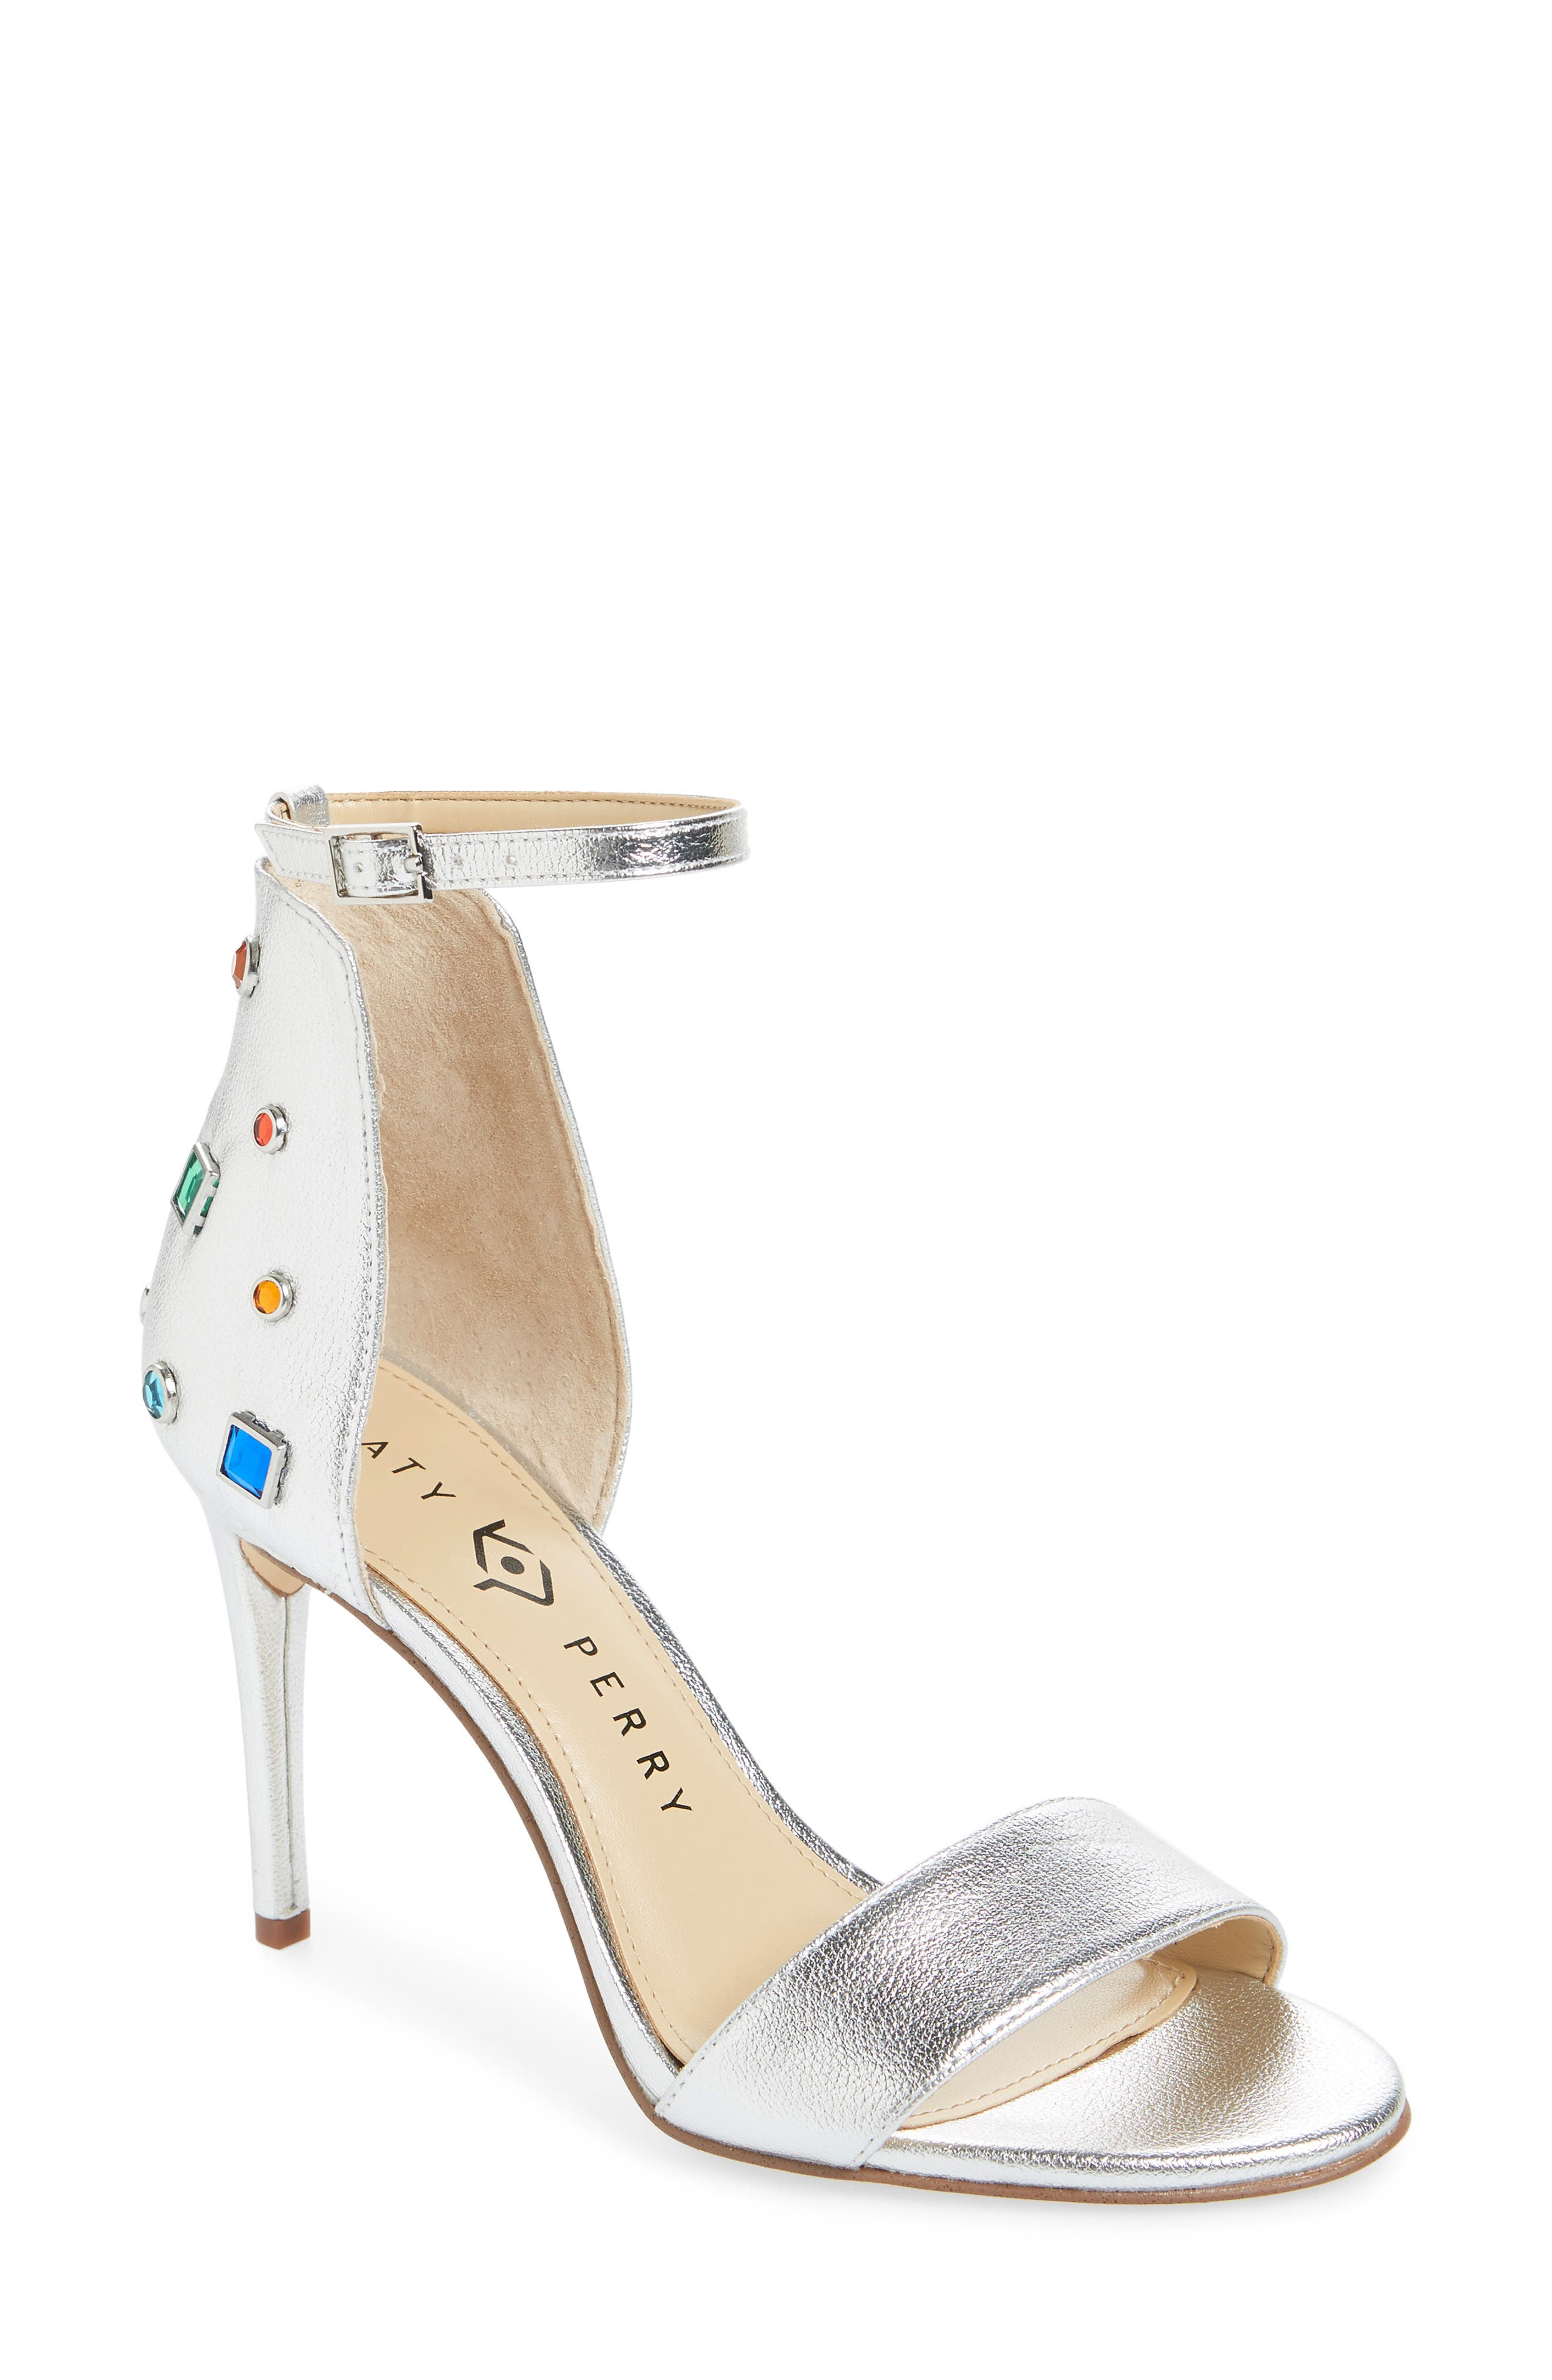 KATY PERRY Jewel Ankle Strap Sandal in Silver